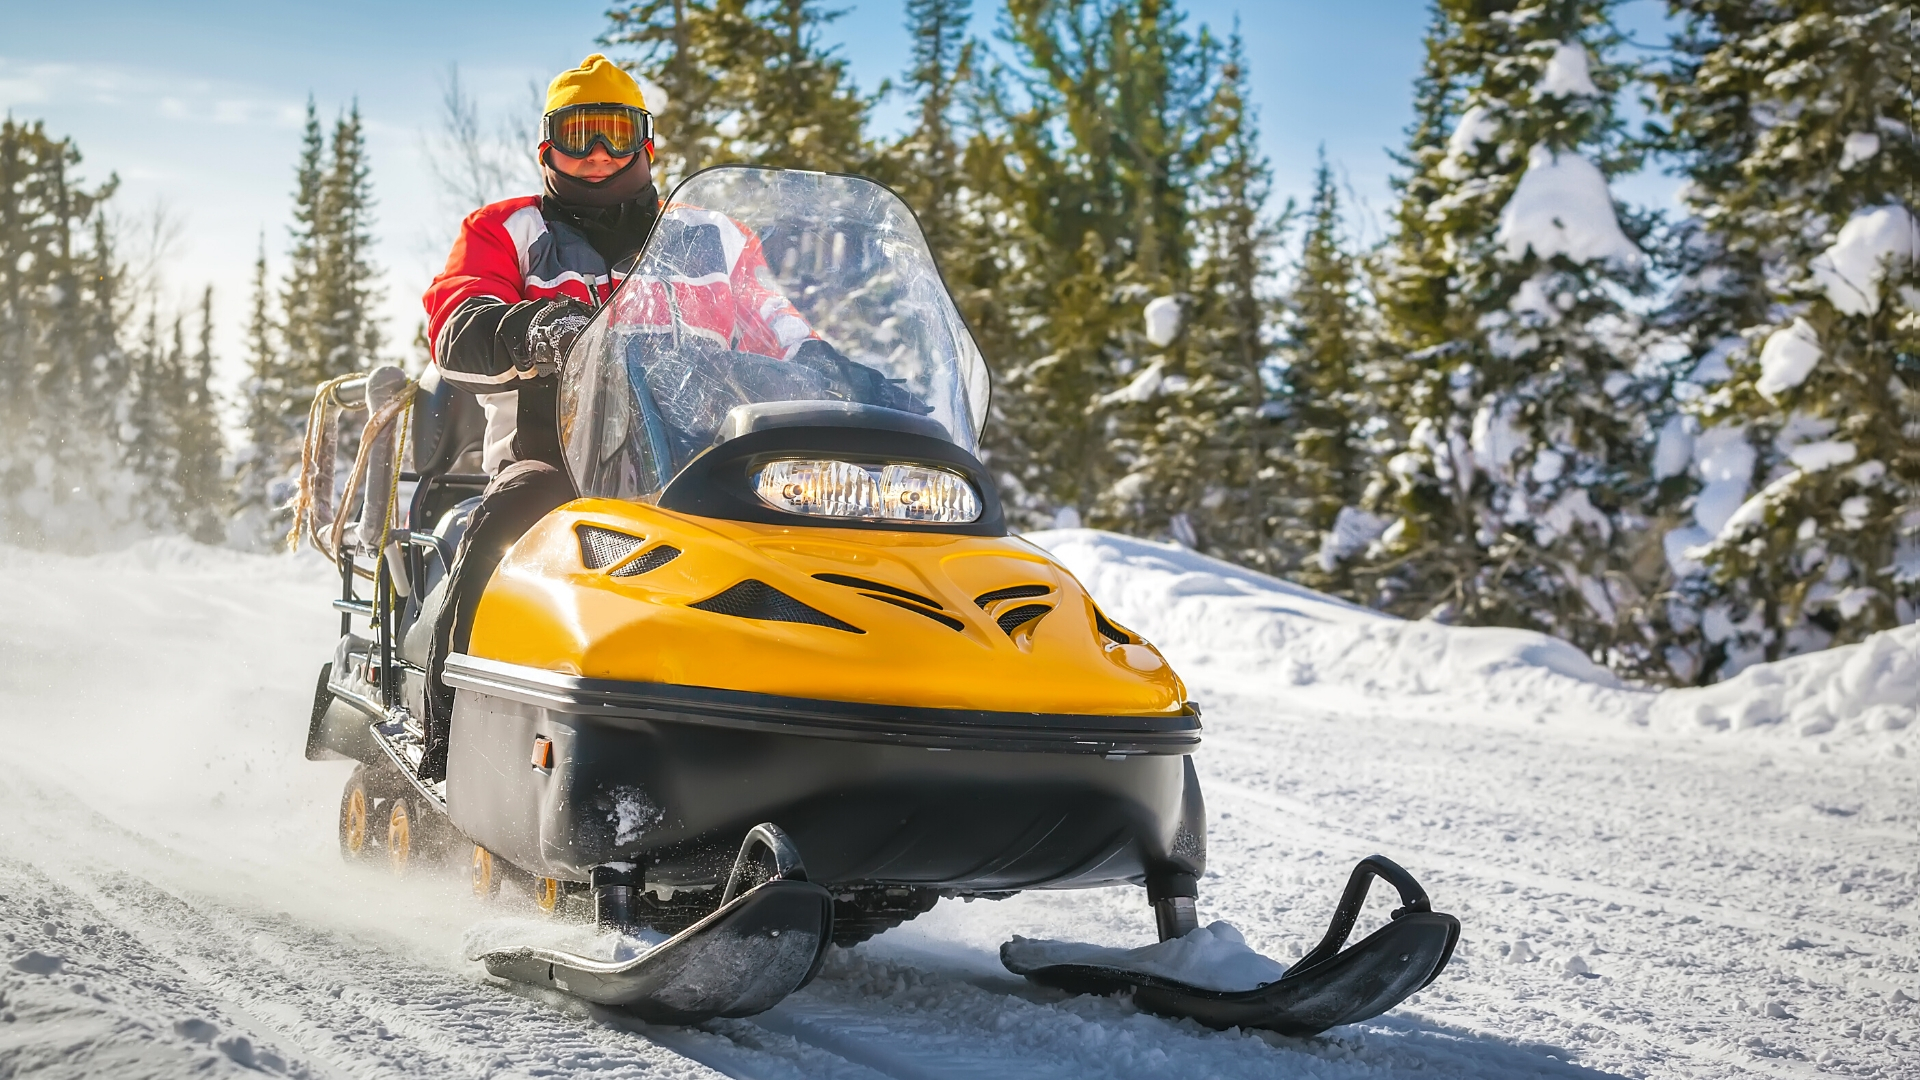 Snowmobile pictures